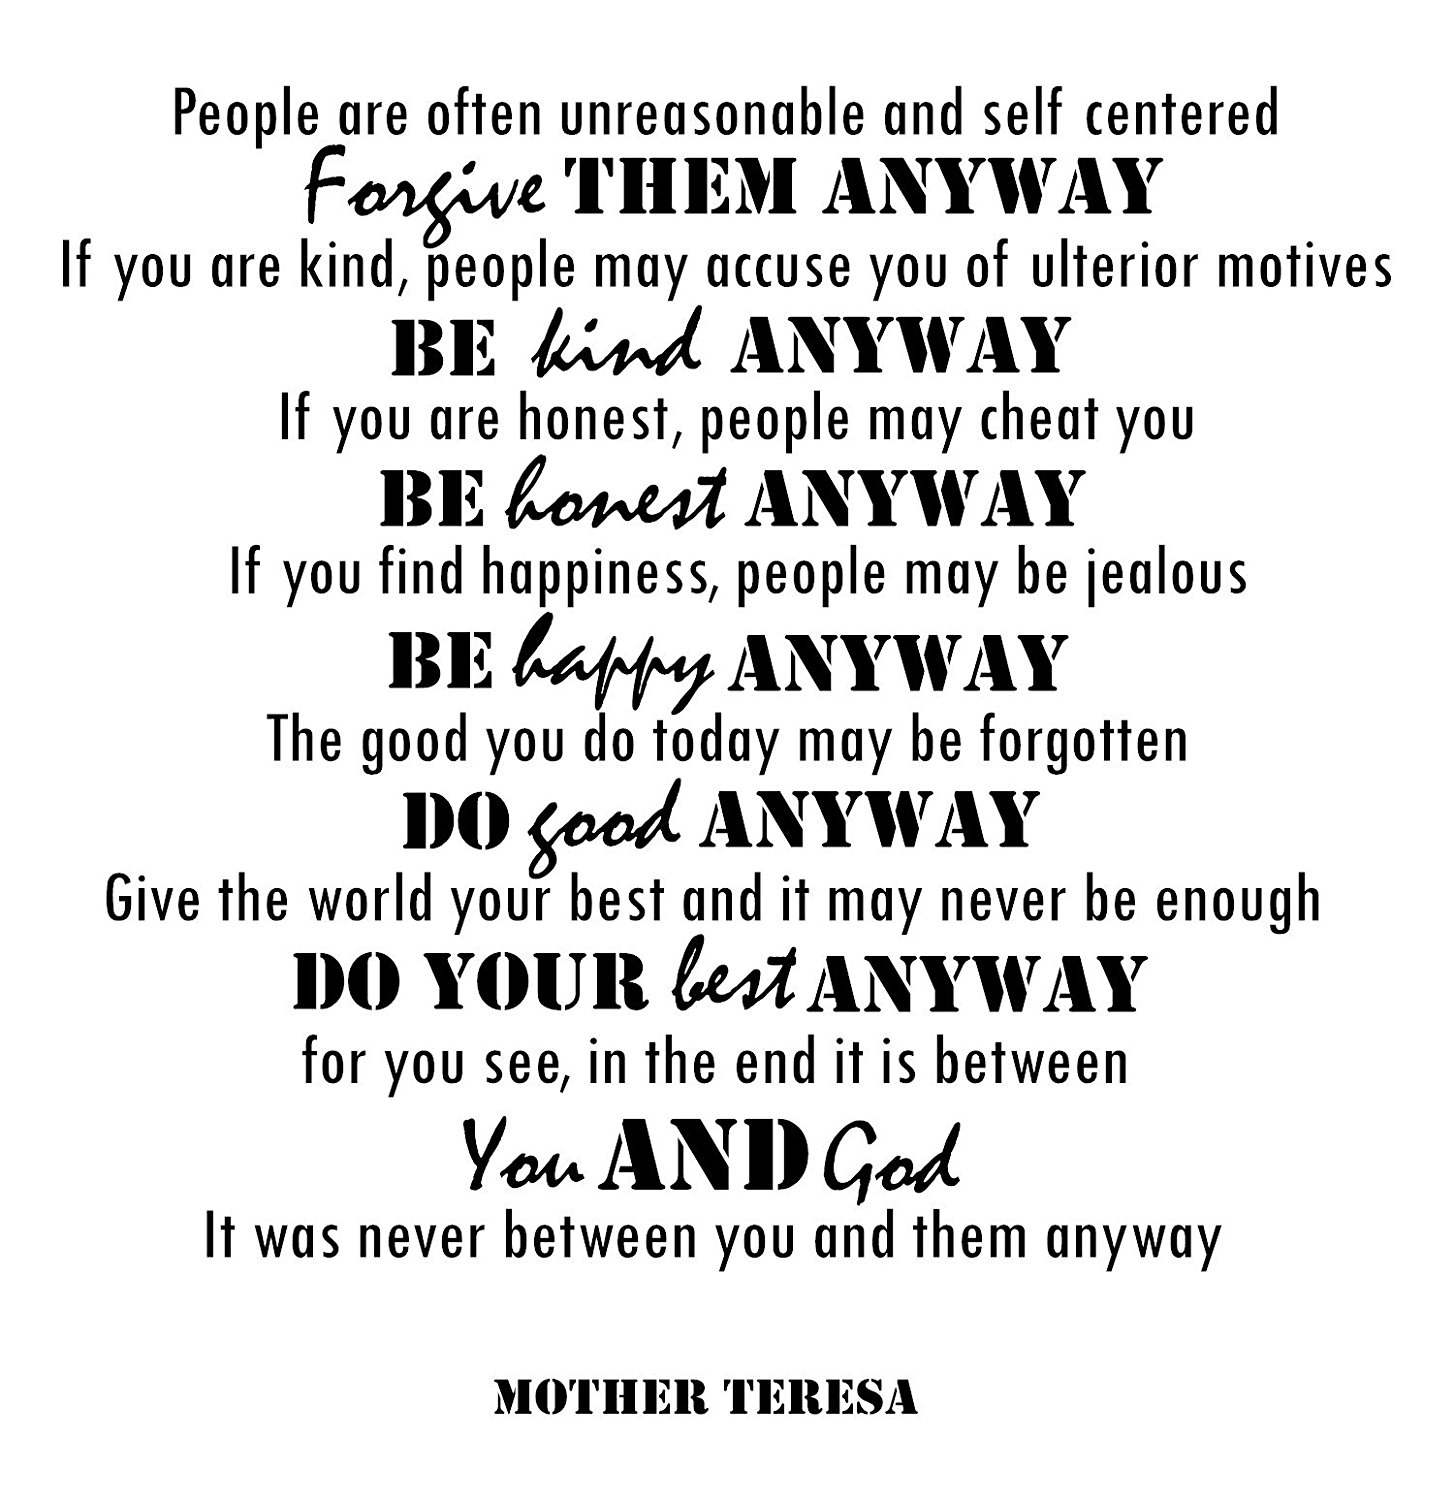 Mother Teresa Quotes Inspirational Wall Decals Vinyl Wall Art: A Wall Decal Inspiring Quotes - Famous Quotes Wall Decor - Wall Art Stickers Quote Decals - Best Removable Wall Decals - Brown